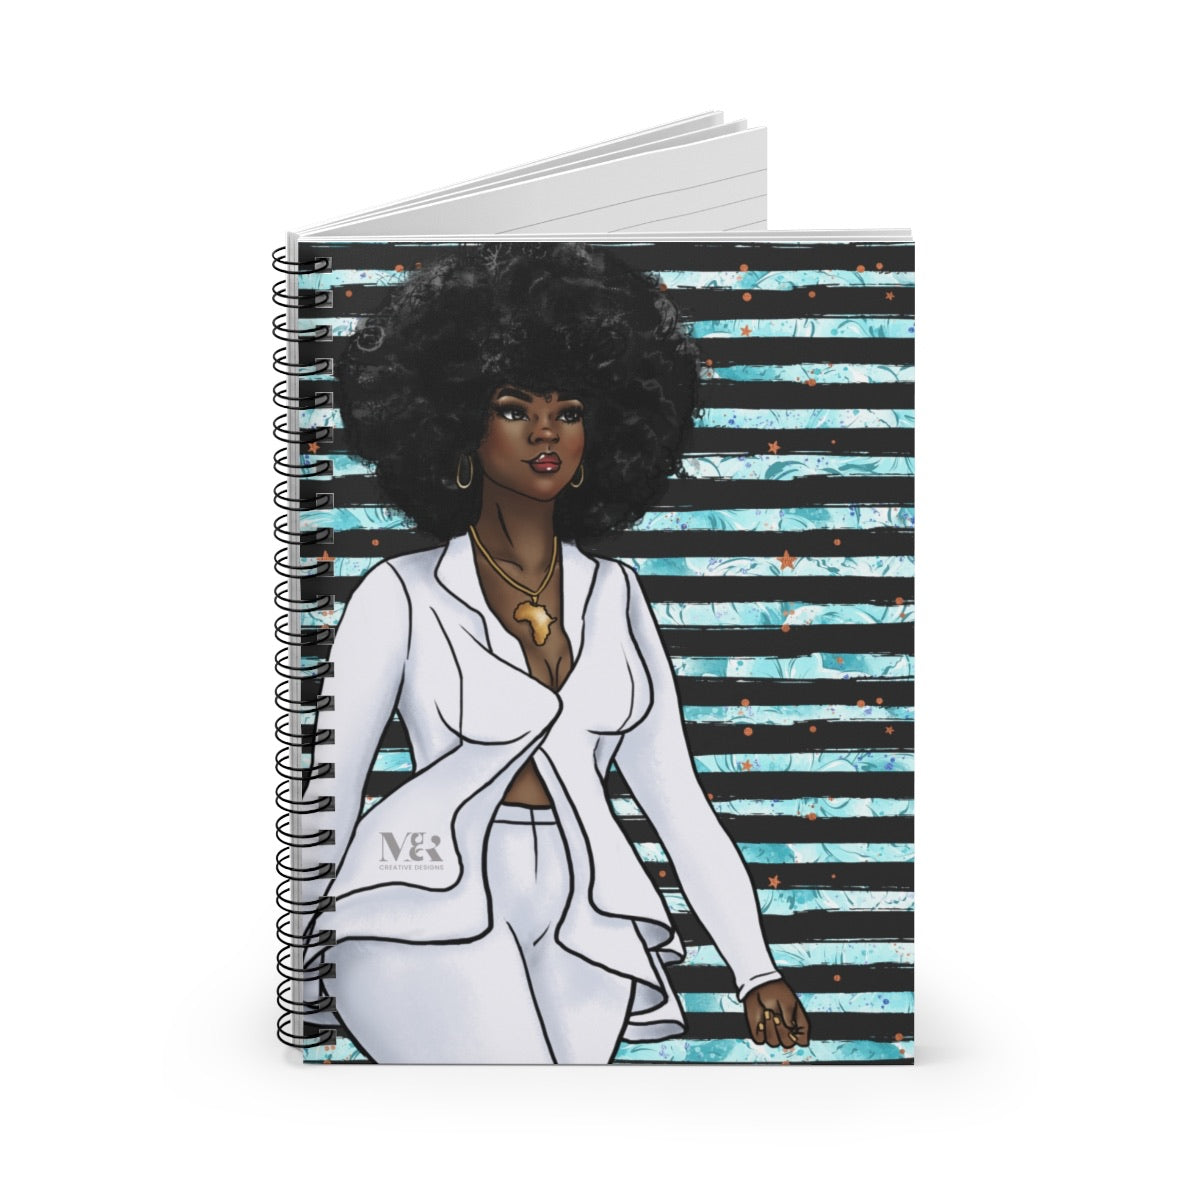 Black Woman In White Suit Journal